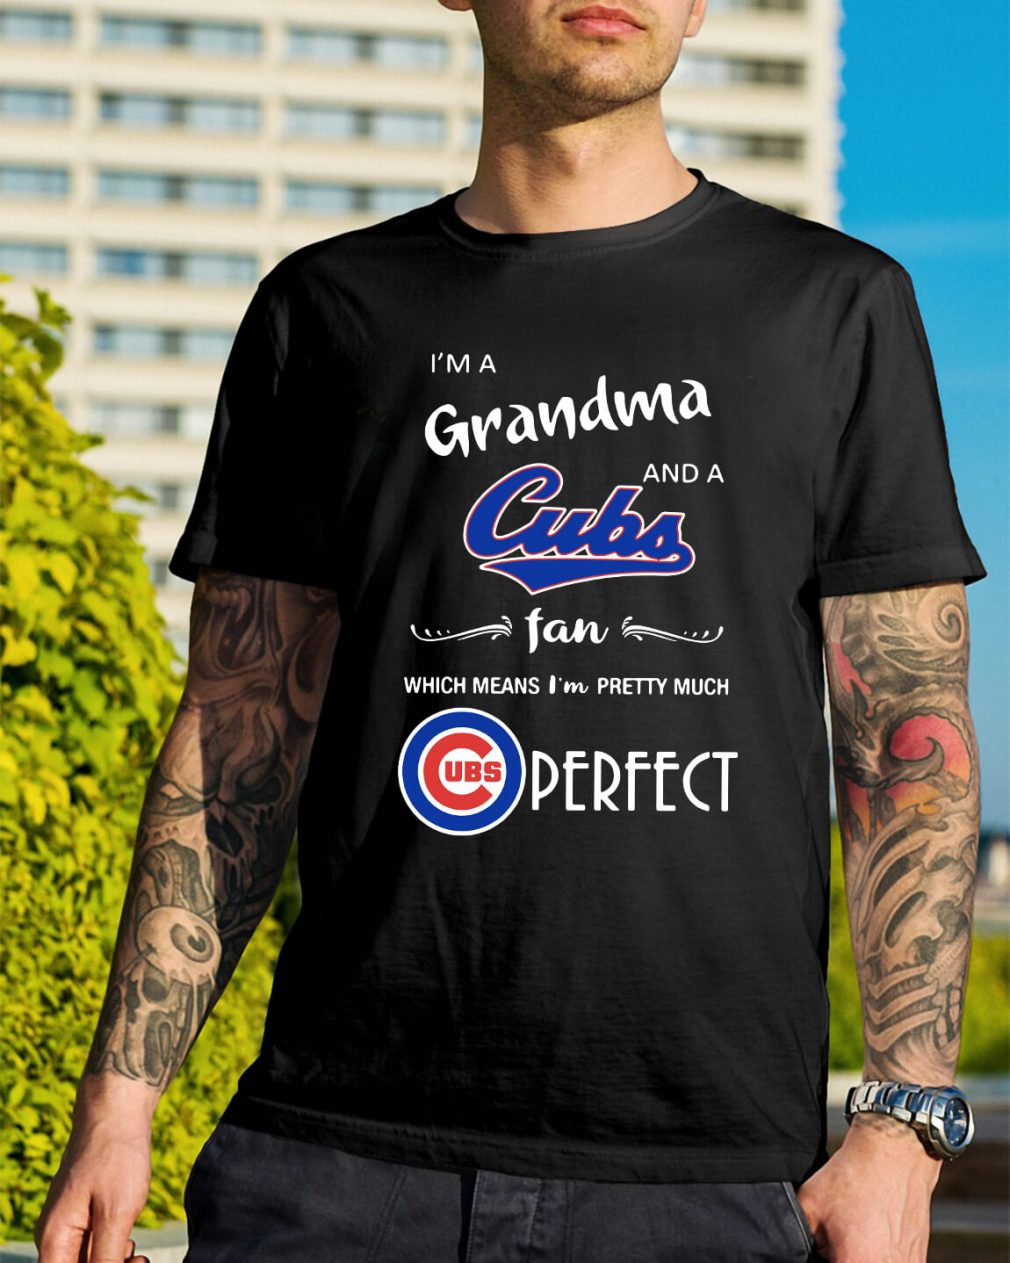 I'm a grandma and a Cubs fan which means I'm pretty much shirt